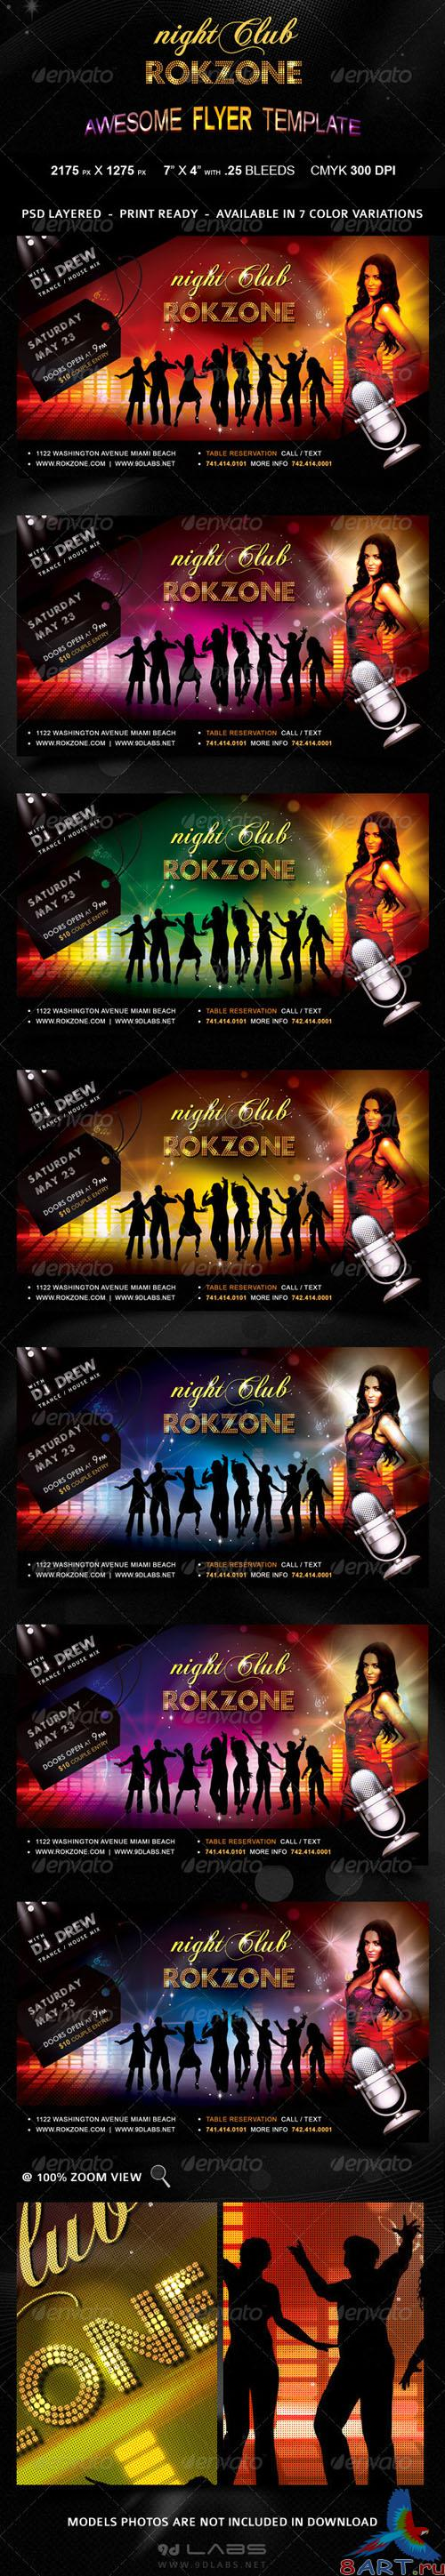 GraphicRiver - Roczone Flyer - 7 Color Variations - Print Ready 2300382